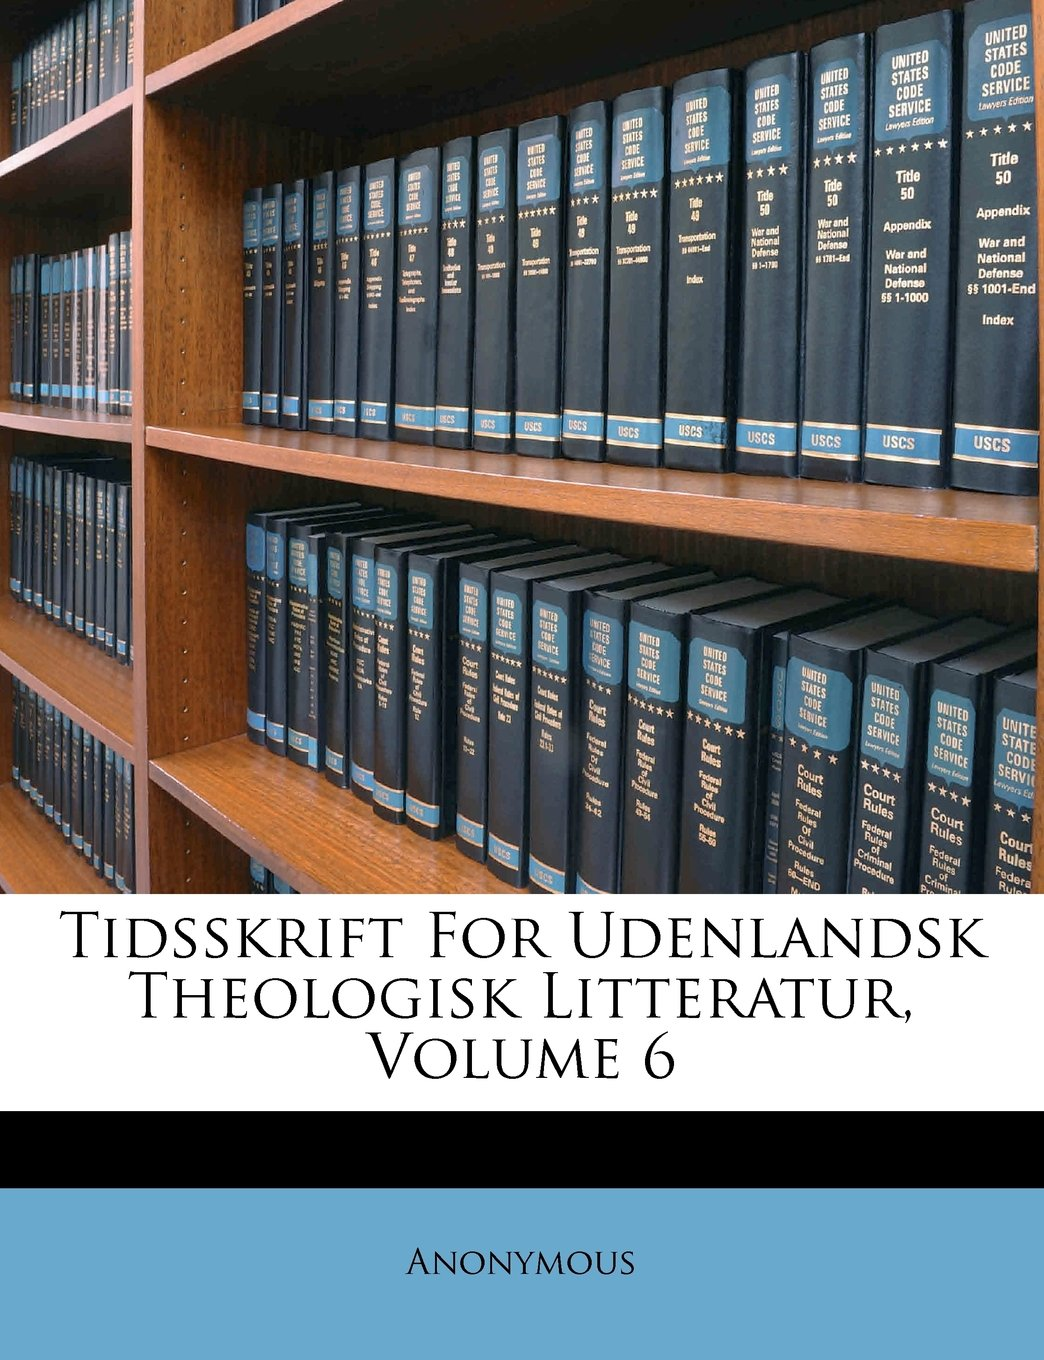 Download Tidsskrift For Udenlandsk Theologisk Litteratur, Volume 6 (Danish Edition) pdf